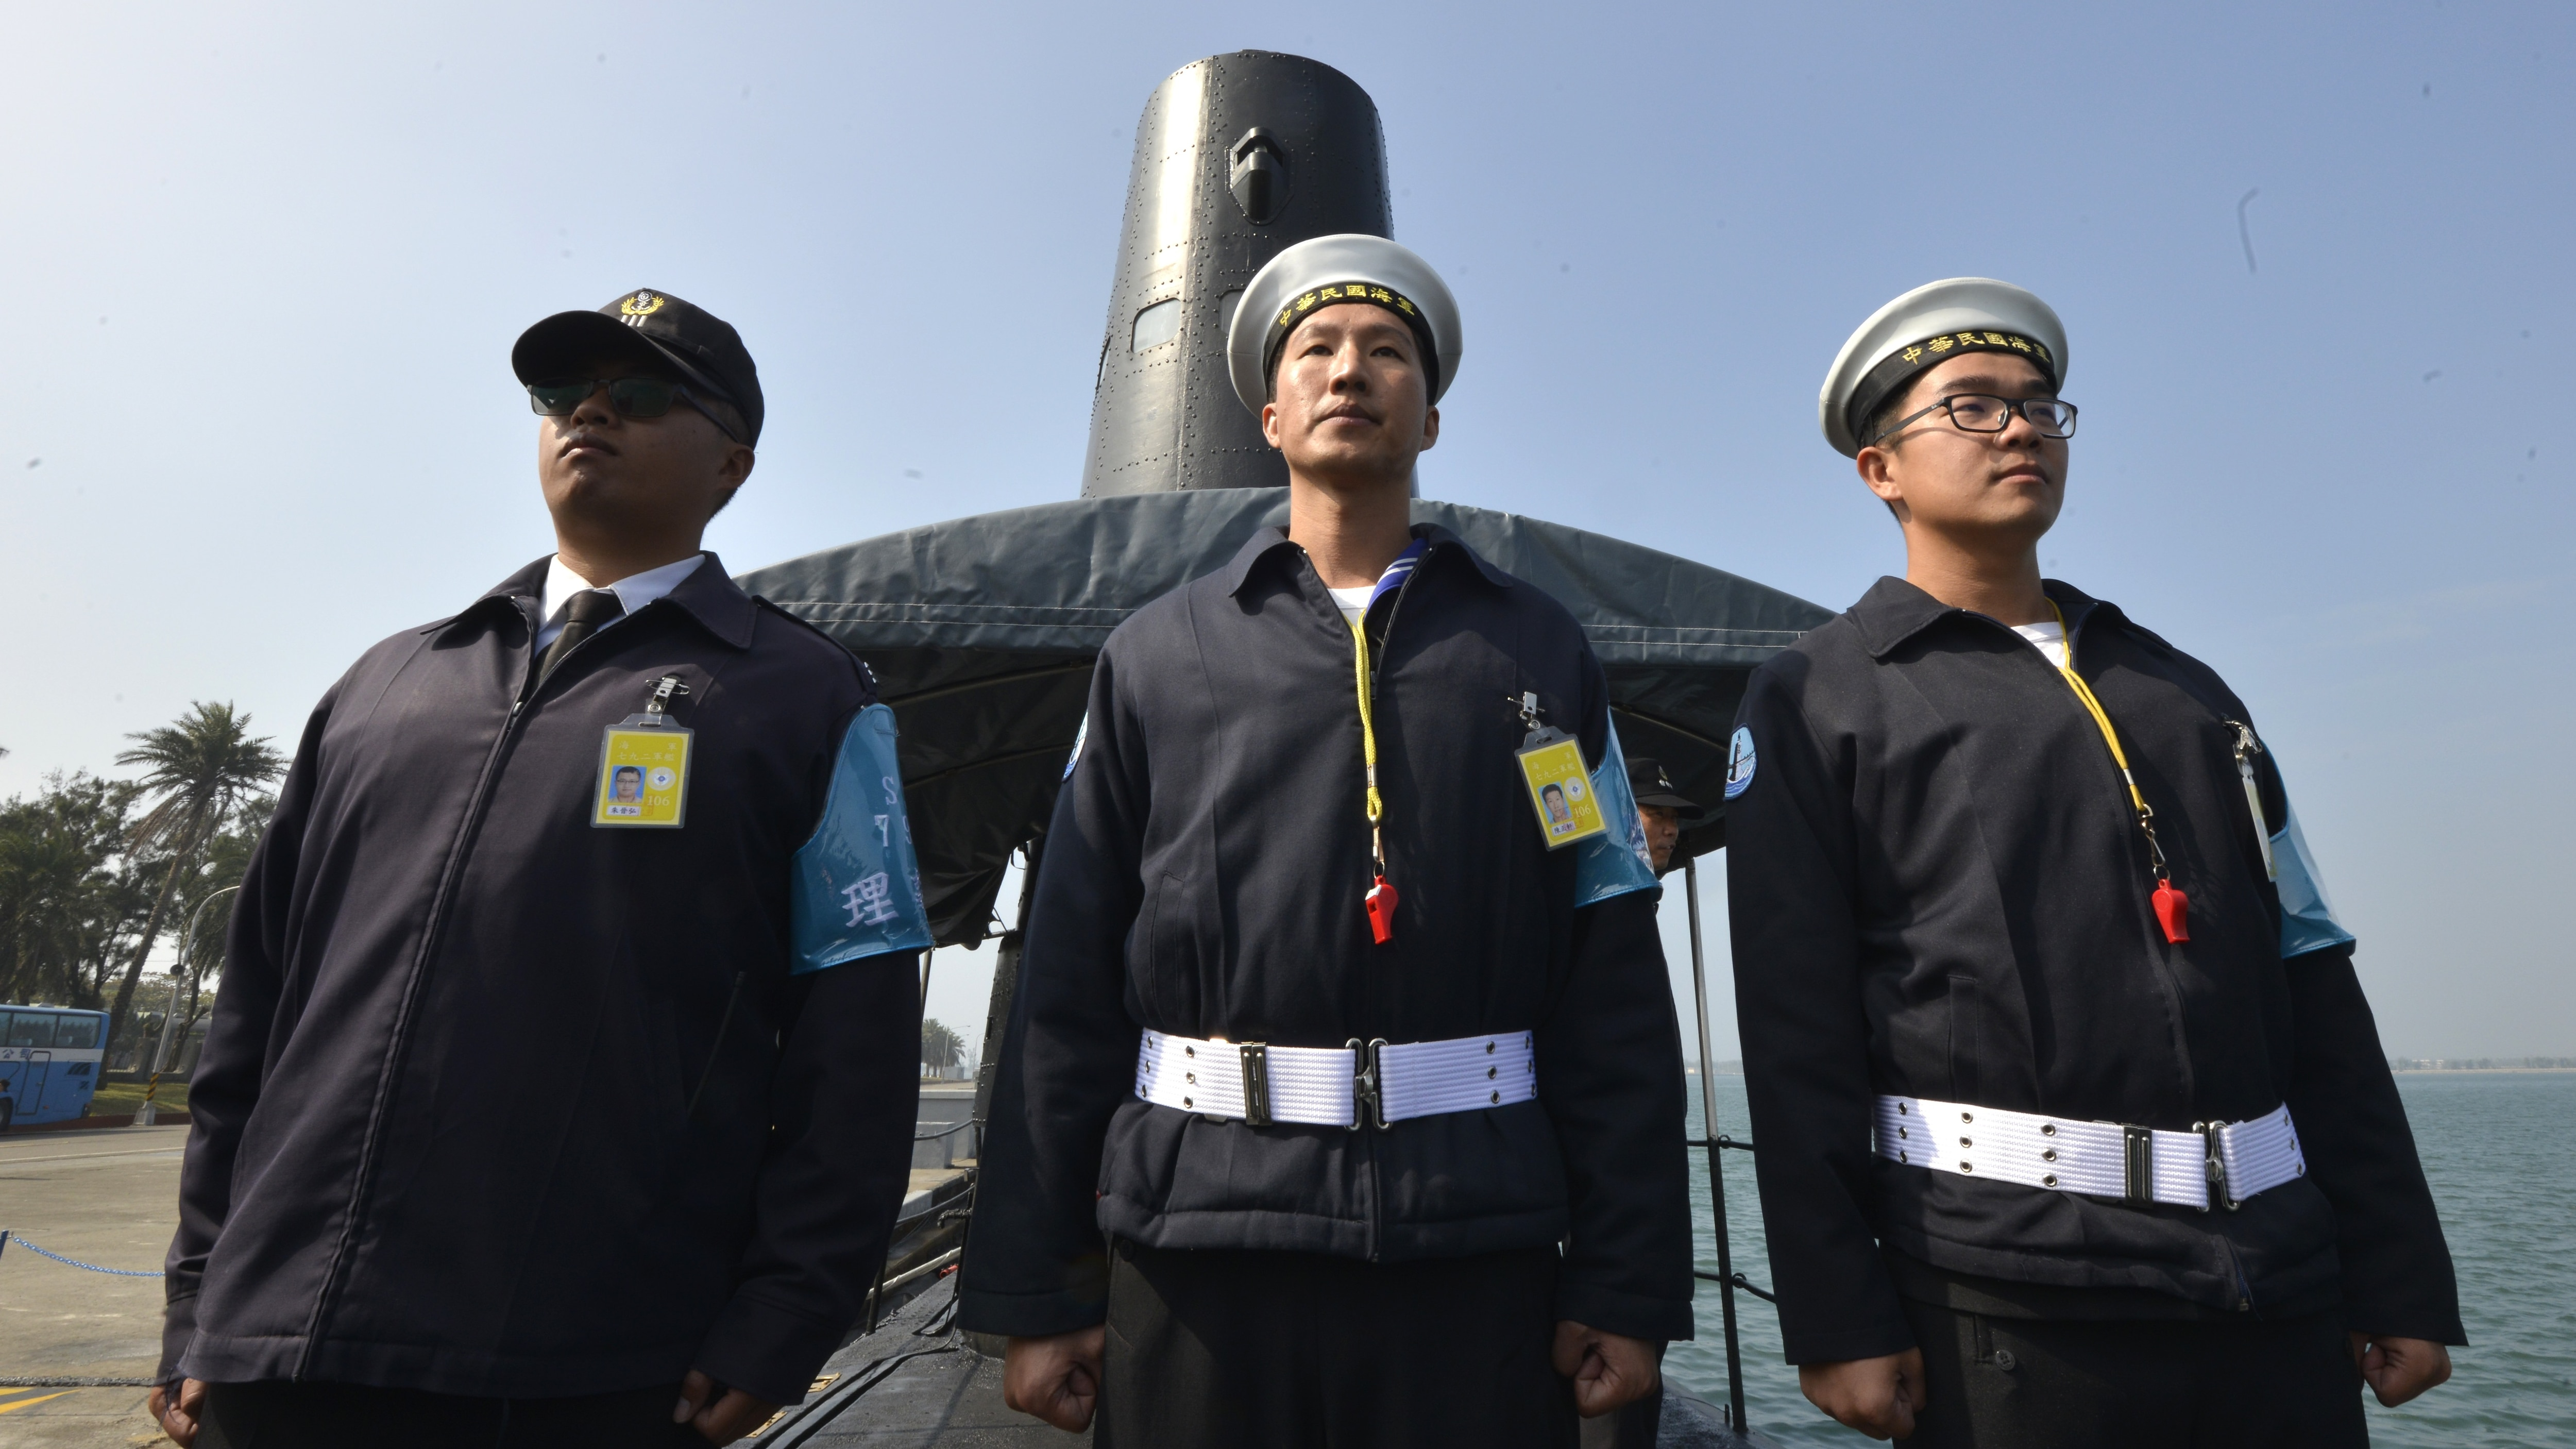 Taiwan struggles to acquire 5 types of submarine tech for local program